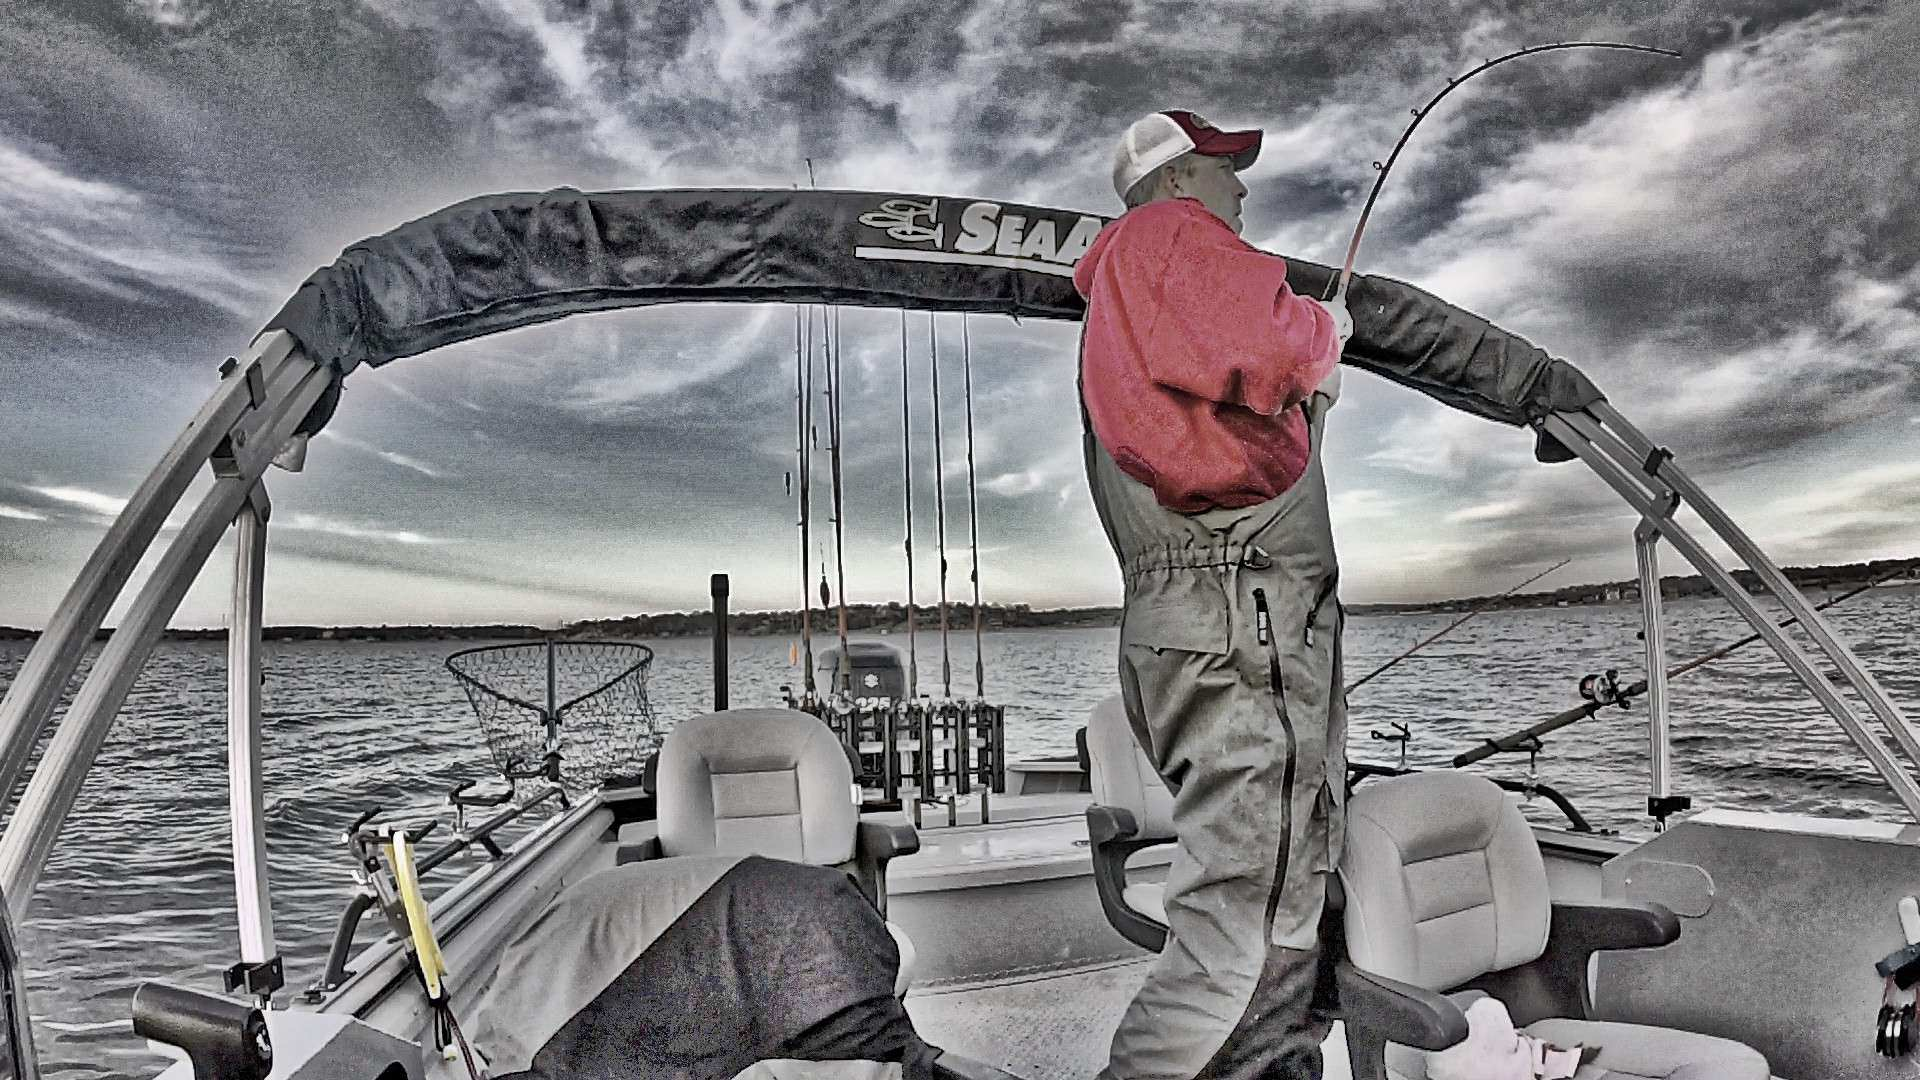 Drift fishing for catfish 9 essential tips for success for Catfish fishing gear